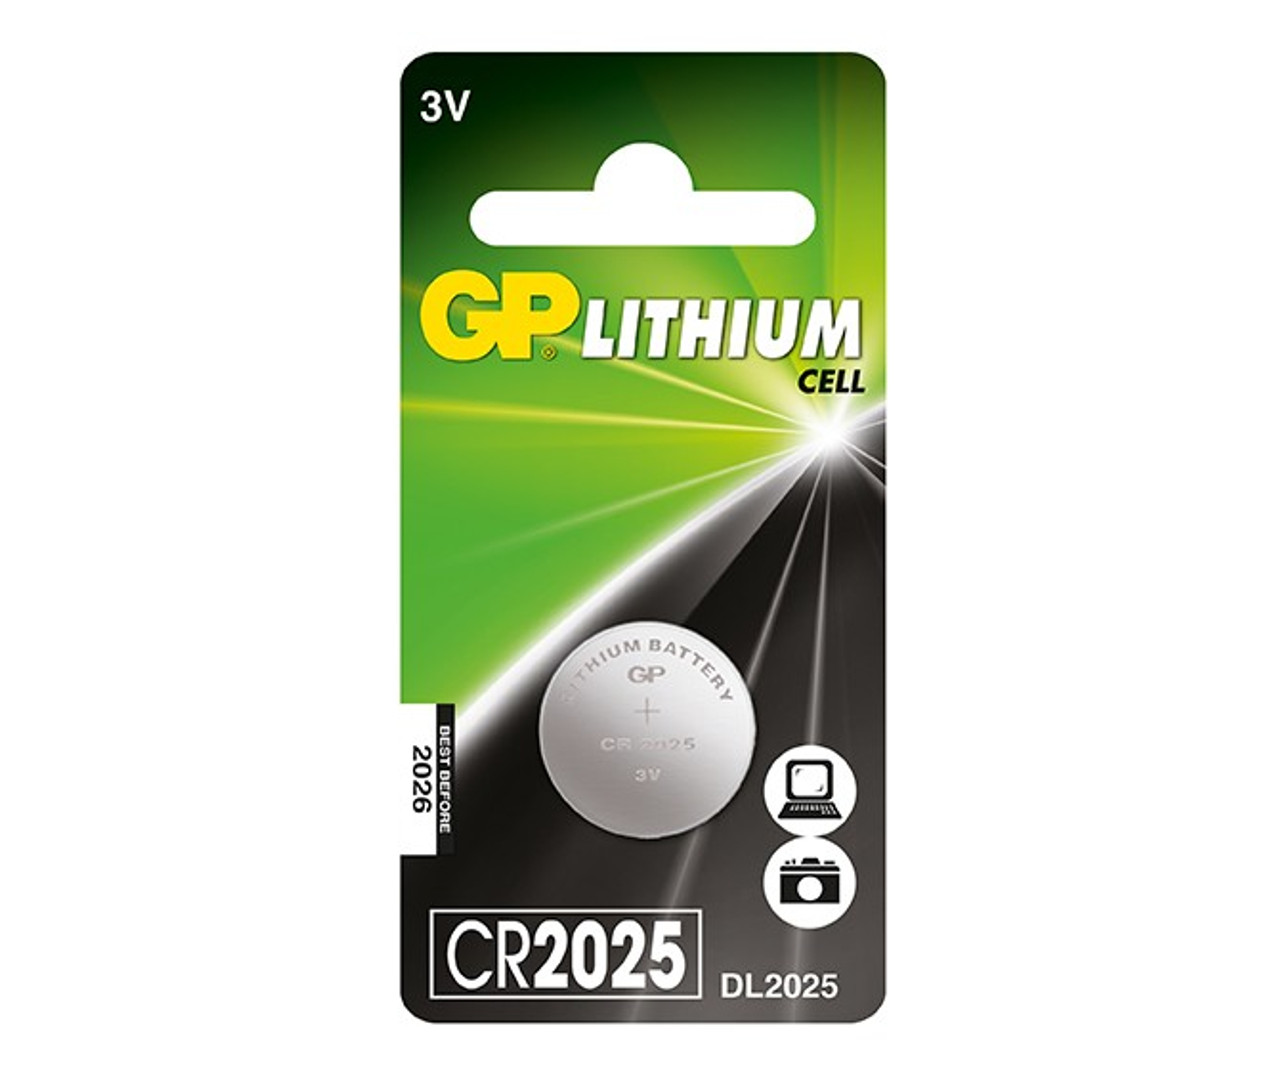 CR2025 - 3V lithium button cell, 150mAh